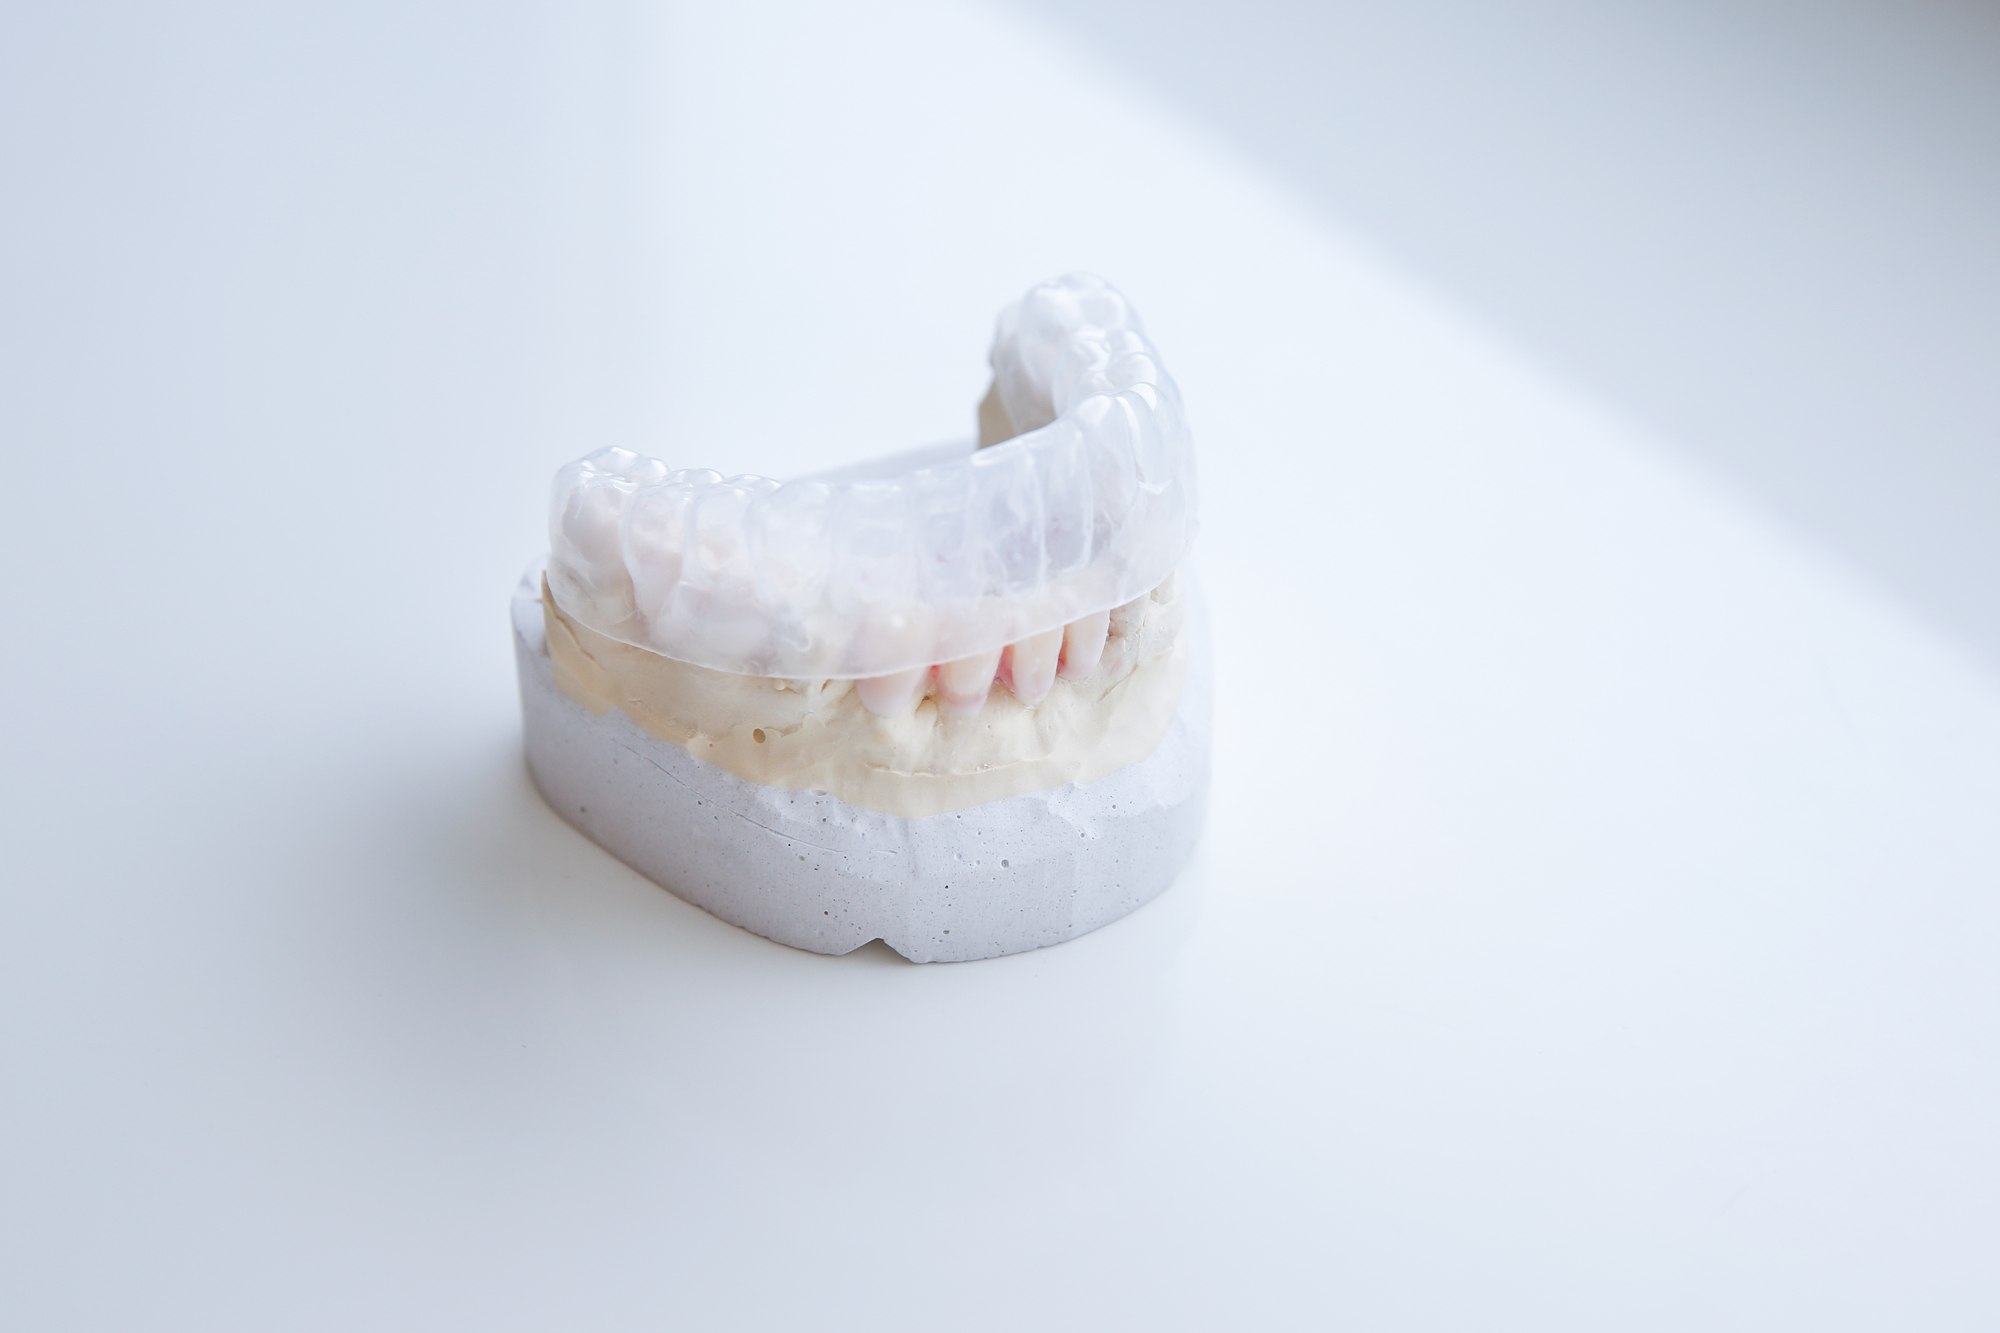 clear aligner on dental model